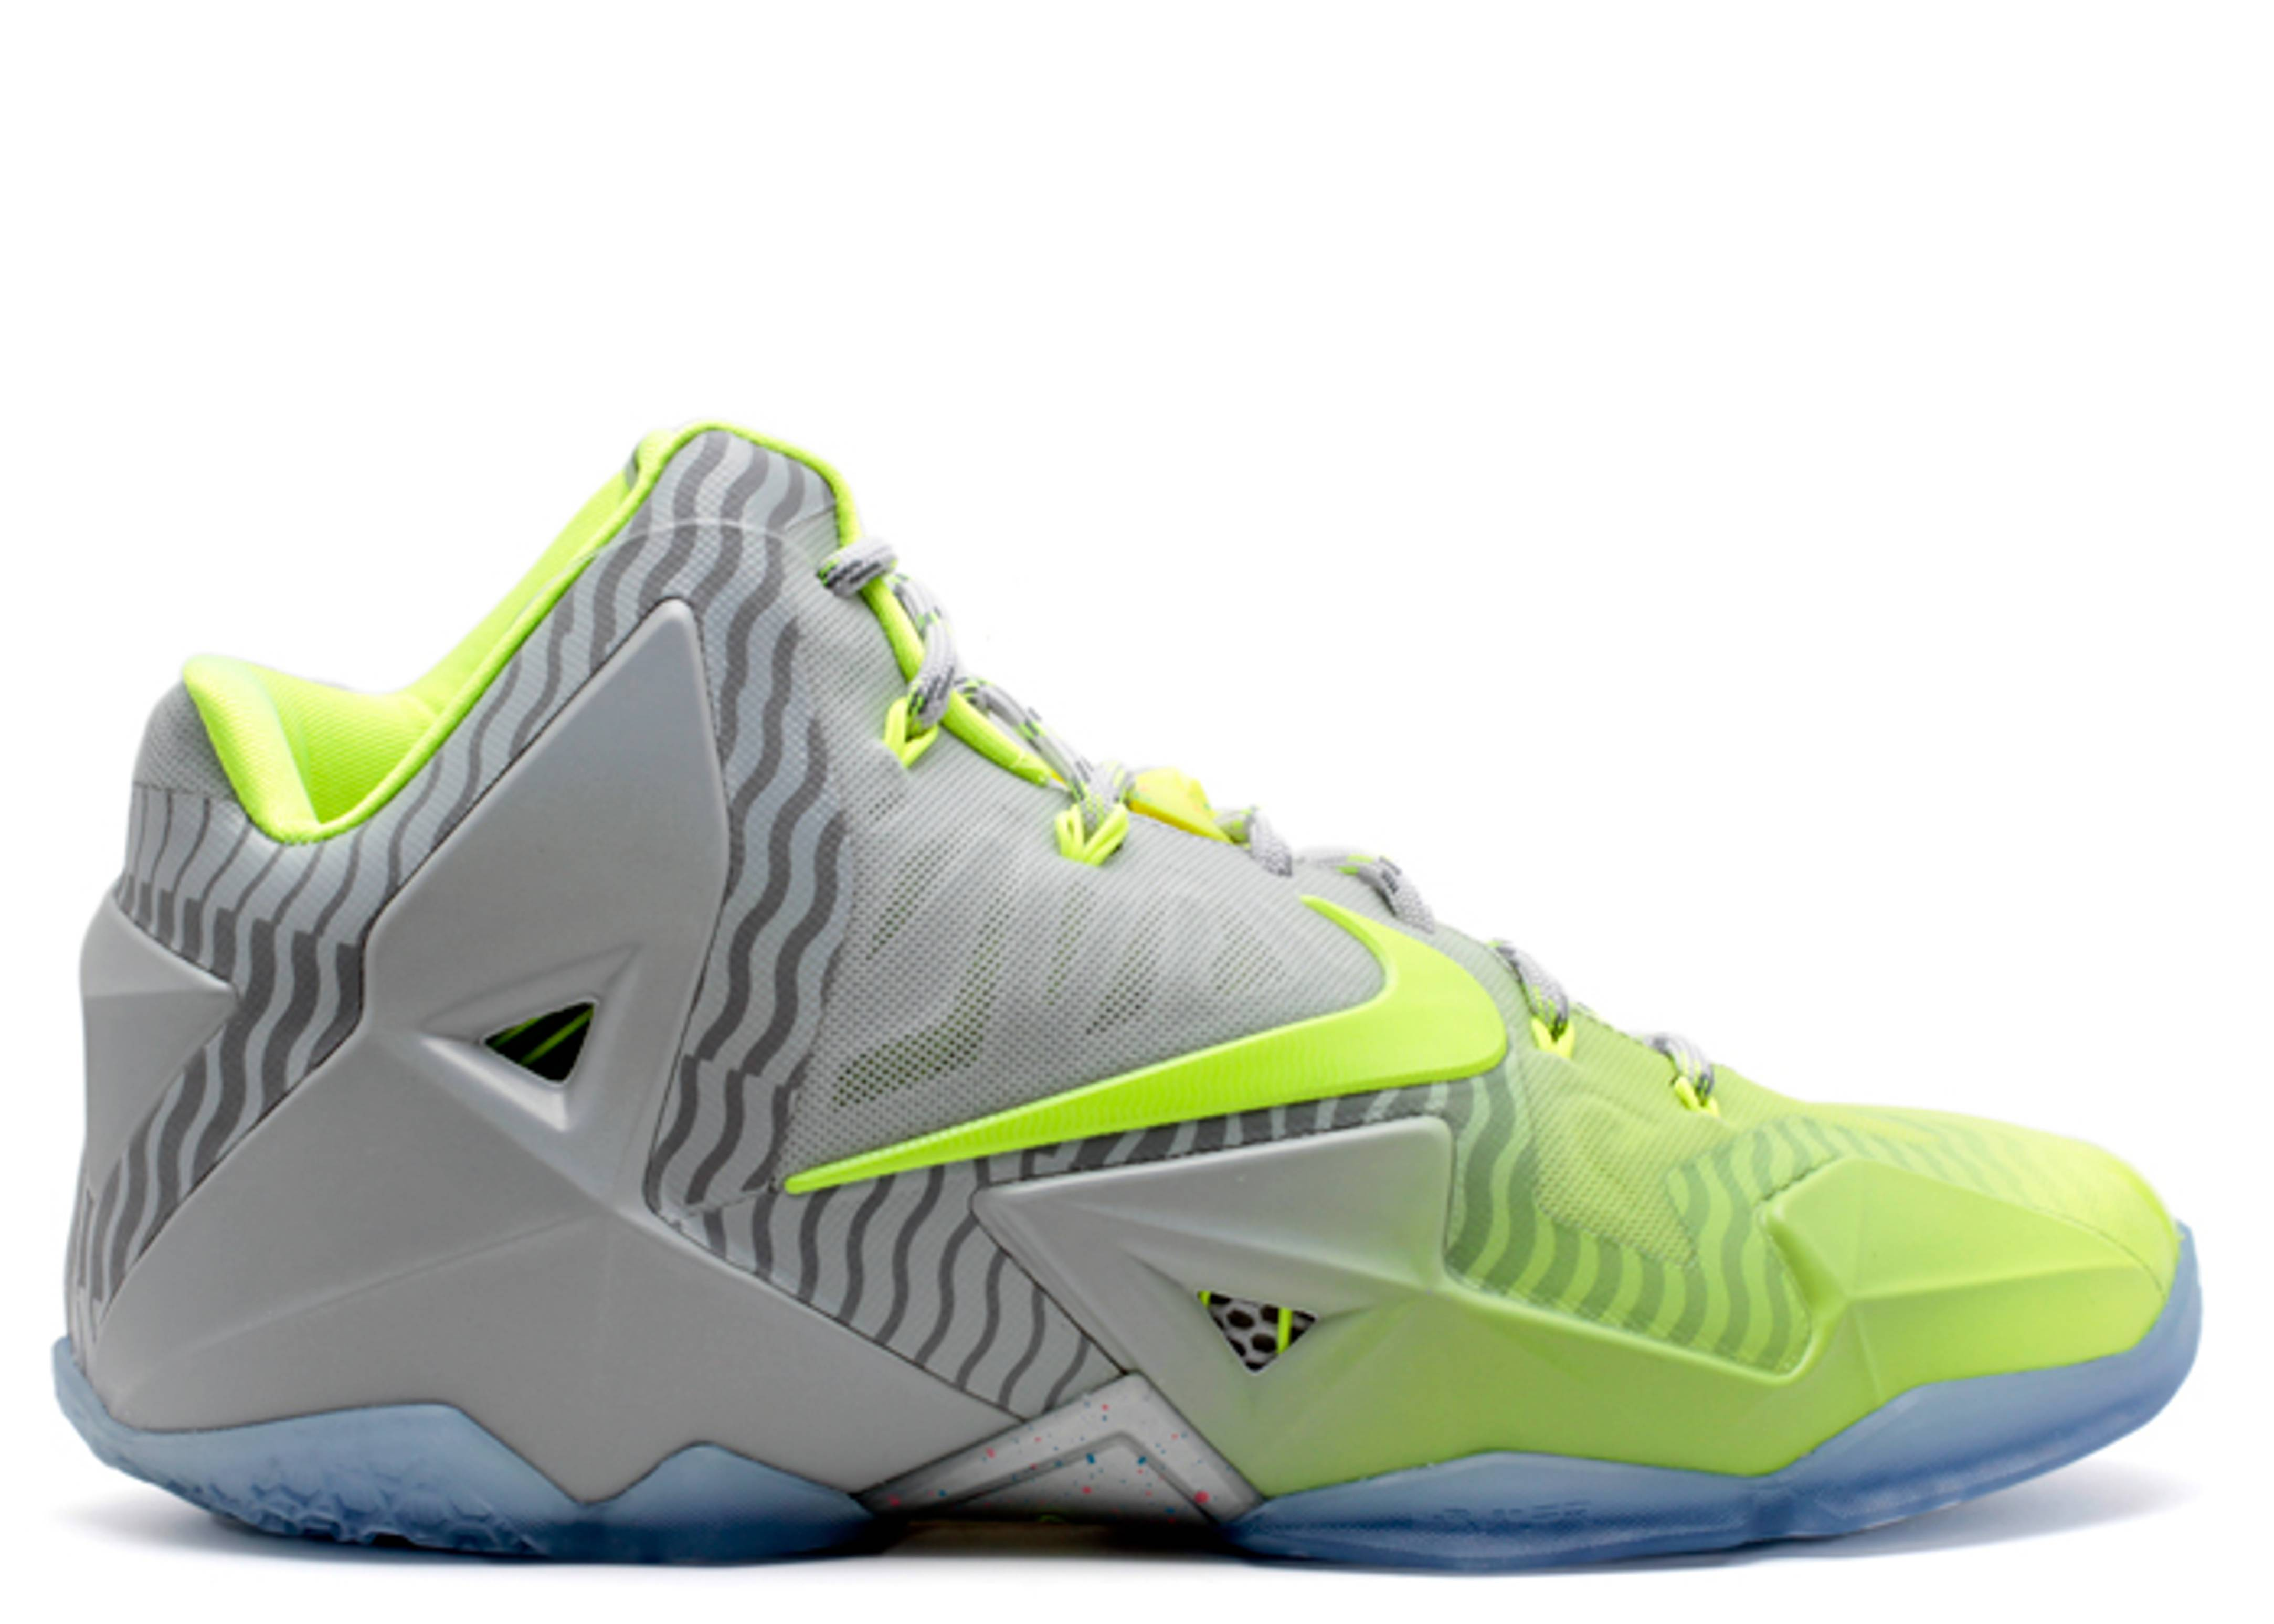 hot sale online a3712 fb0a3 lebron 11 collection